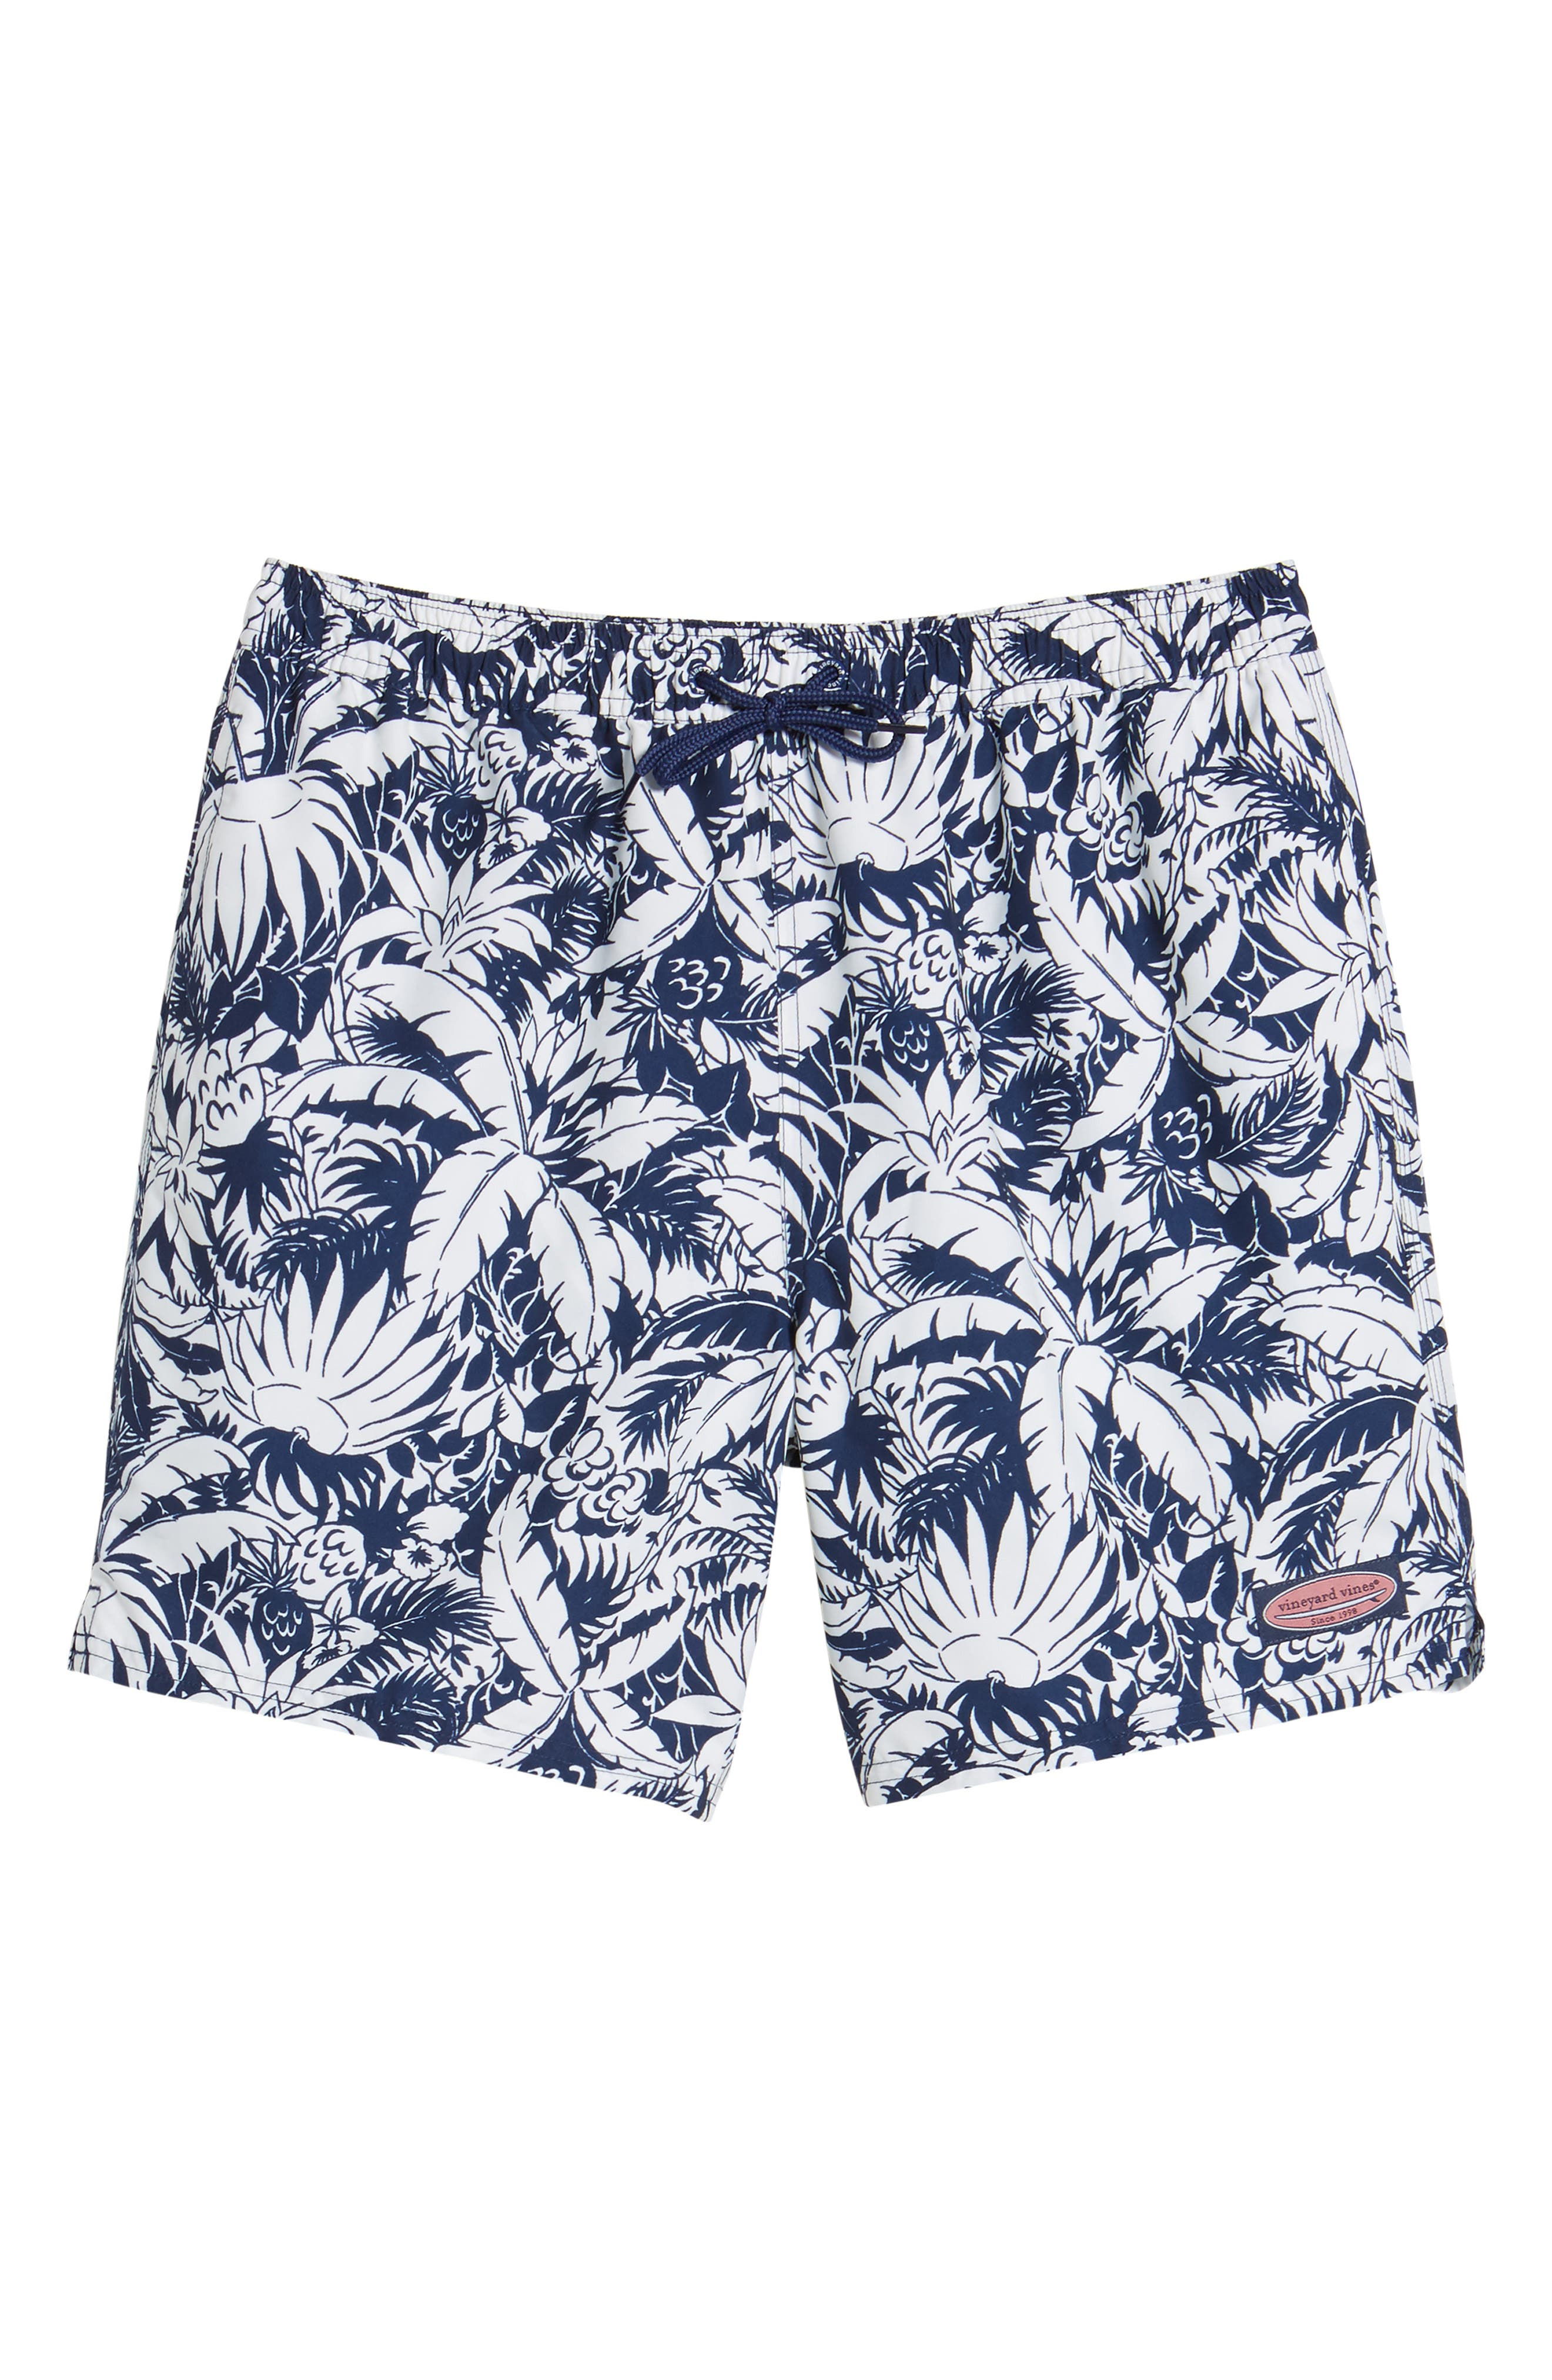 Chappy Pineapple in Palms Swim Trunks,                             Alternate thumbnail 6, color,                             400